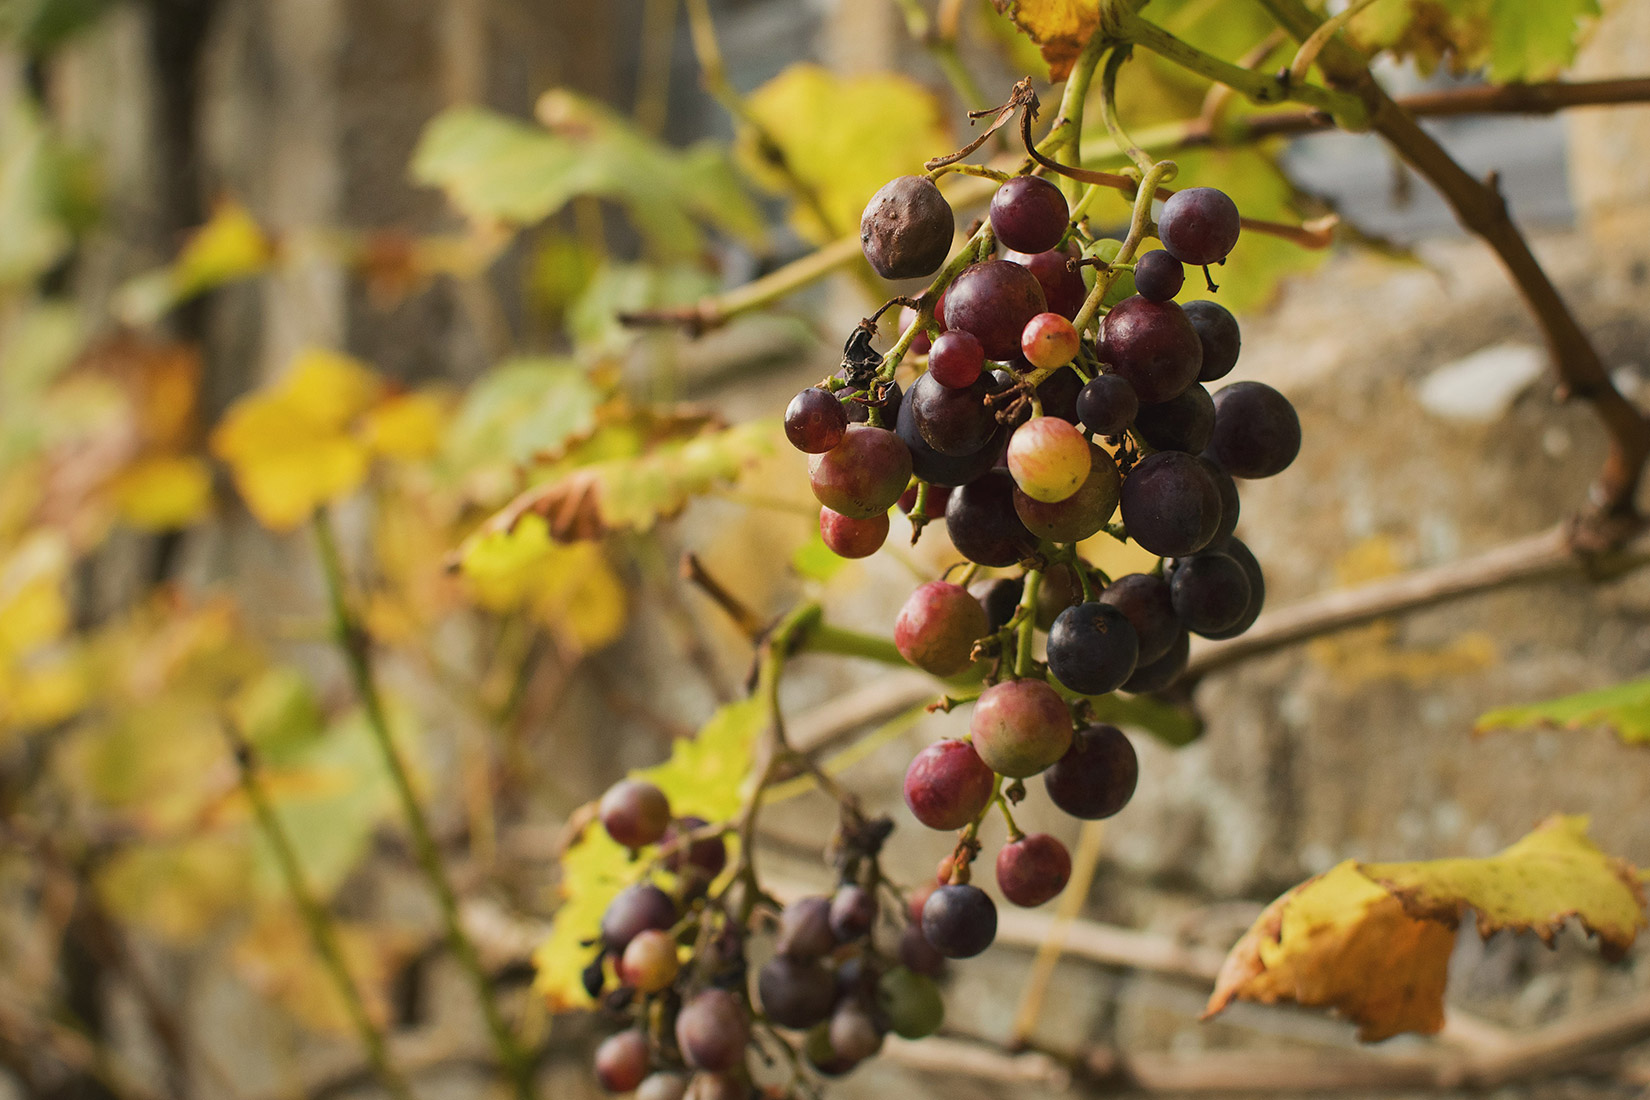 Grapes growing on a vine alongside Snowshill Manor in Autumn, National Trust